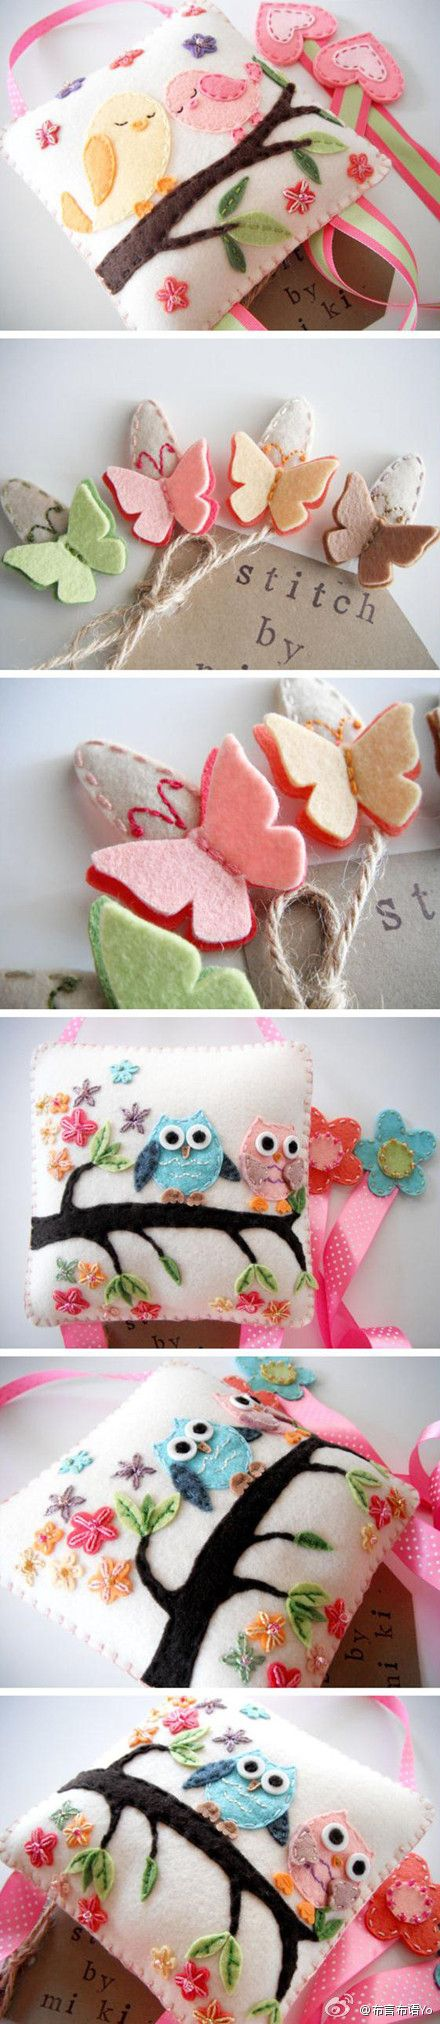 OH MY ... felt butterflies and Owls... in spring colors.. bring on spring!